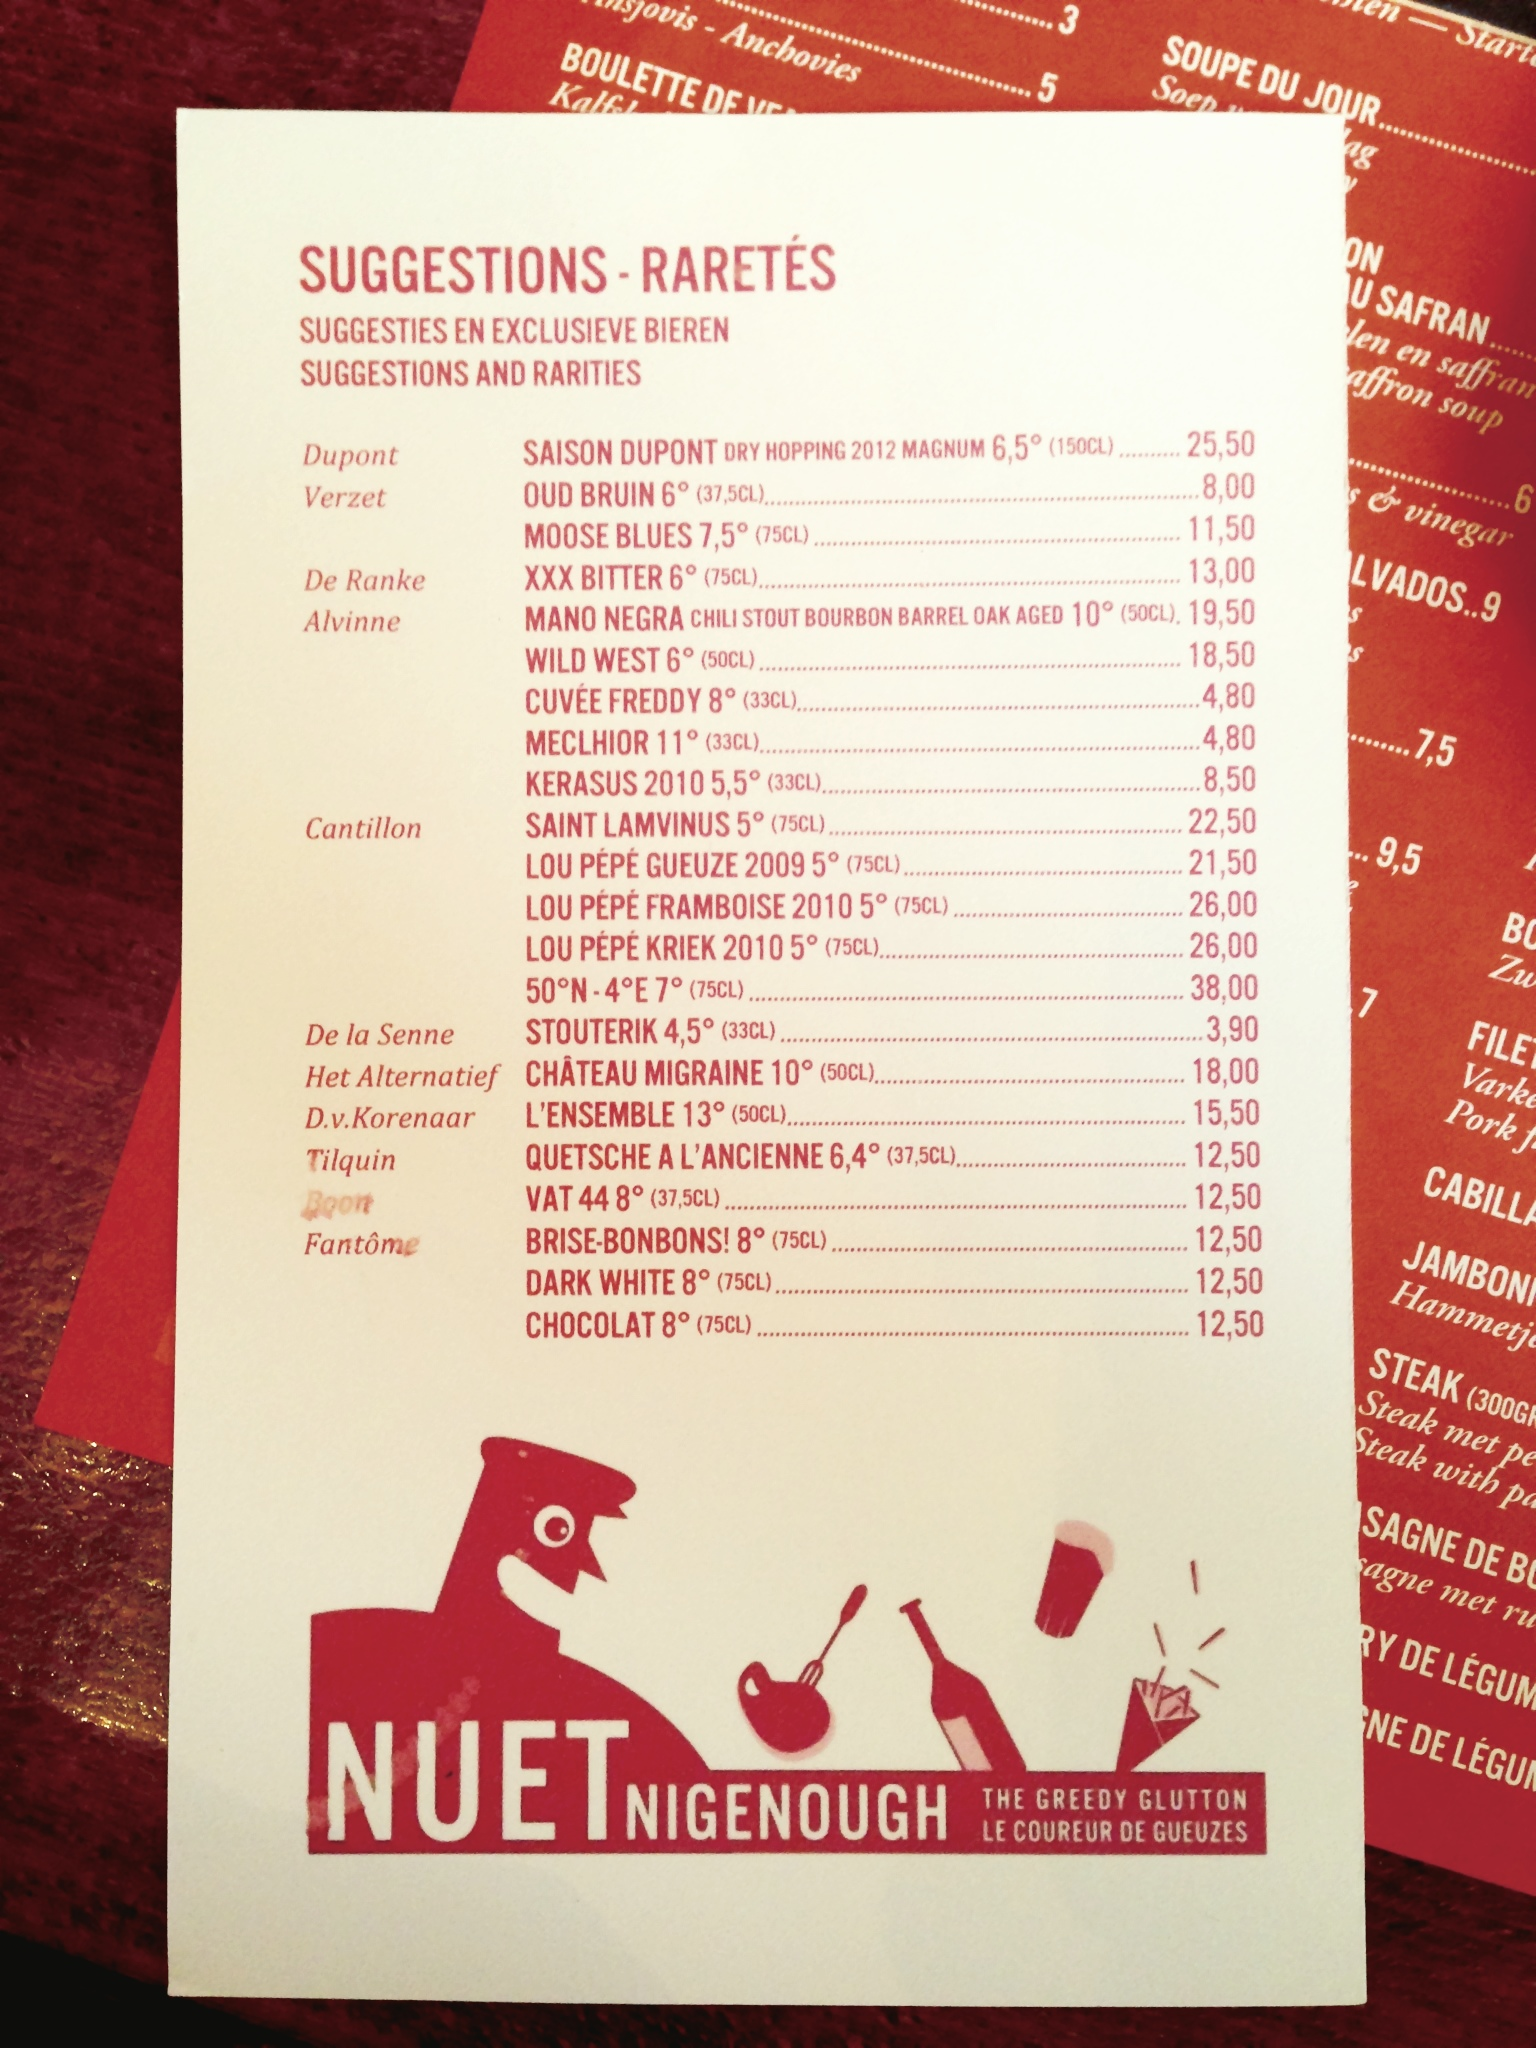 Nuetnigenough (The Greedy Glutton), an amazing beer focused restaurant in Brussels